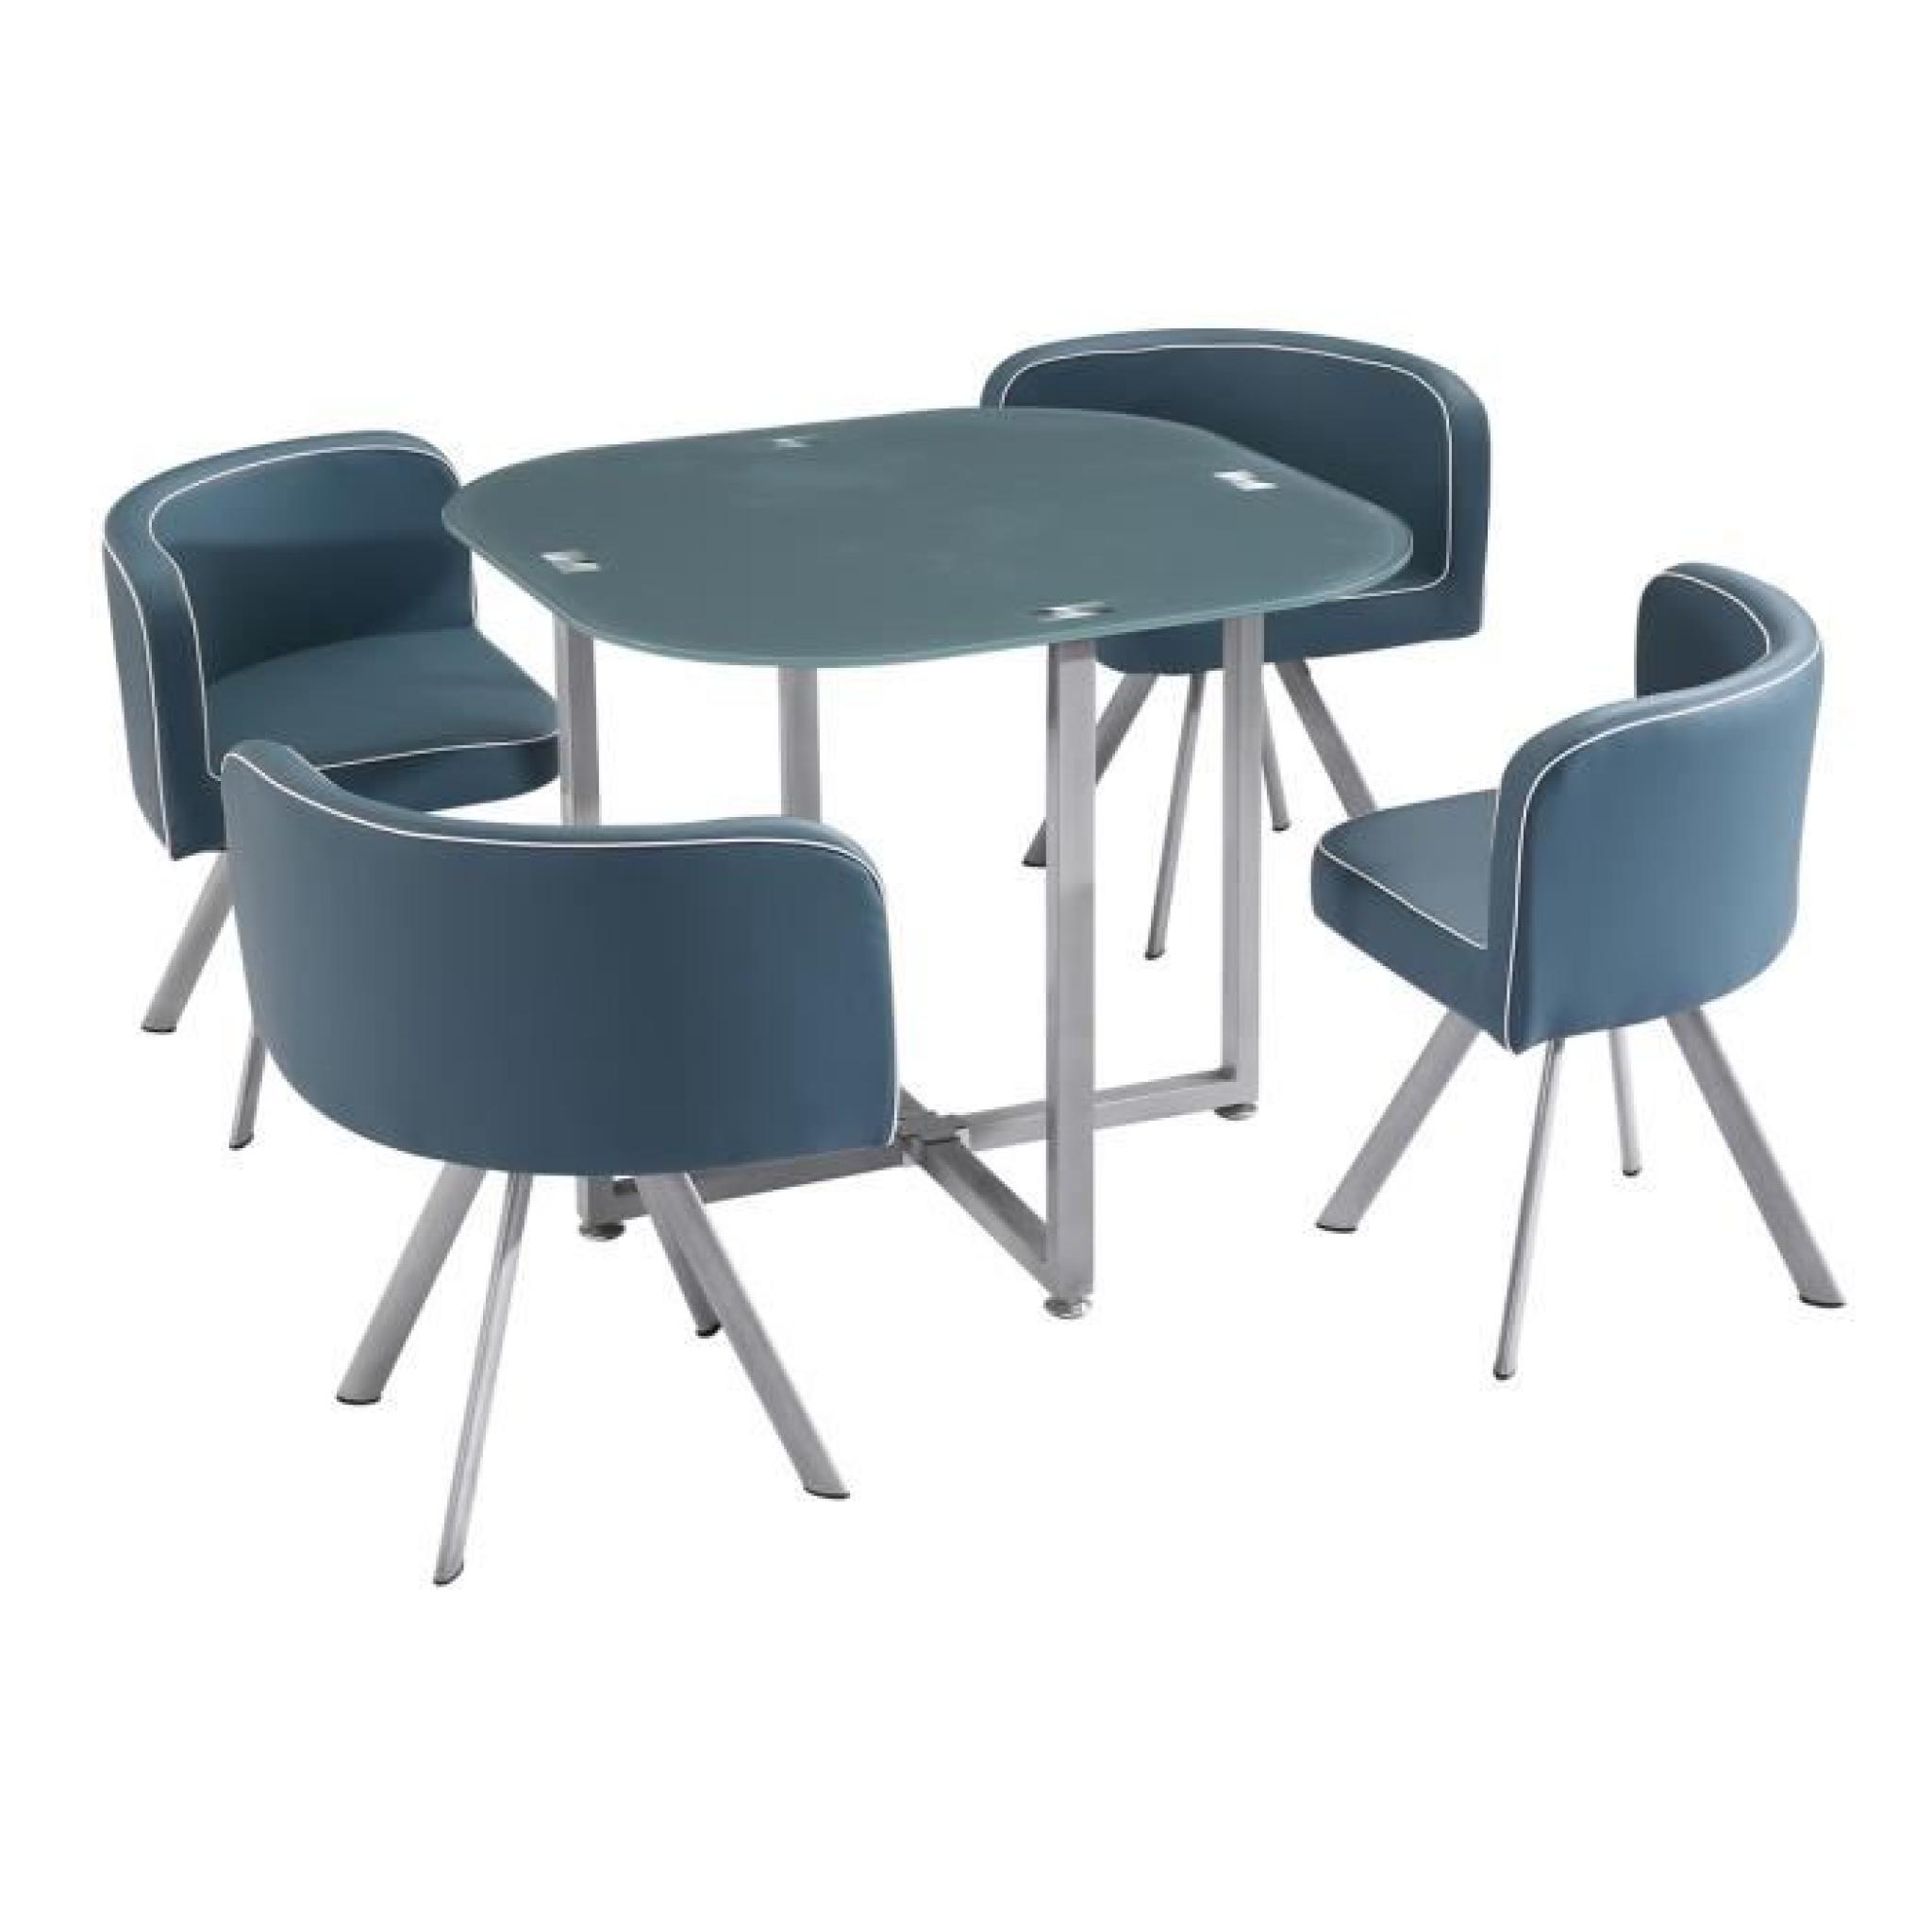 Ensemble table a manger et chaise pas cher maison design for Ensemble table et chaise but